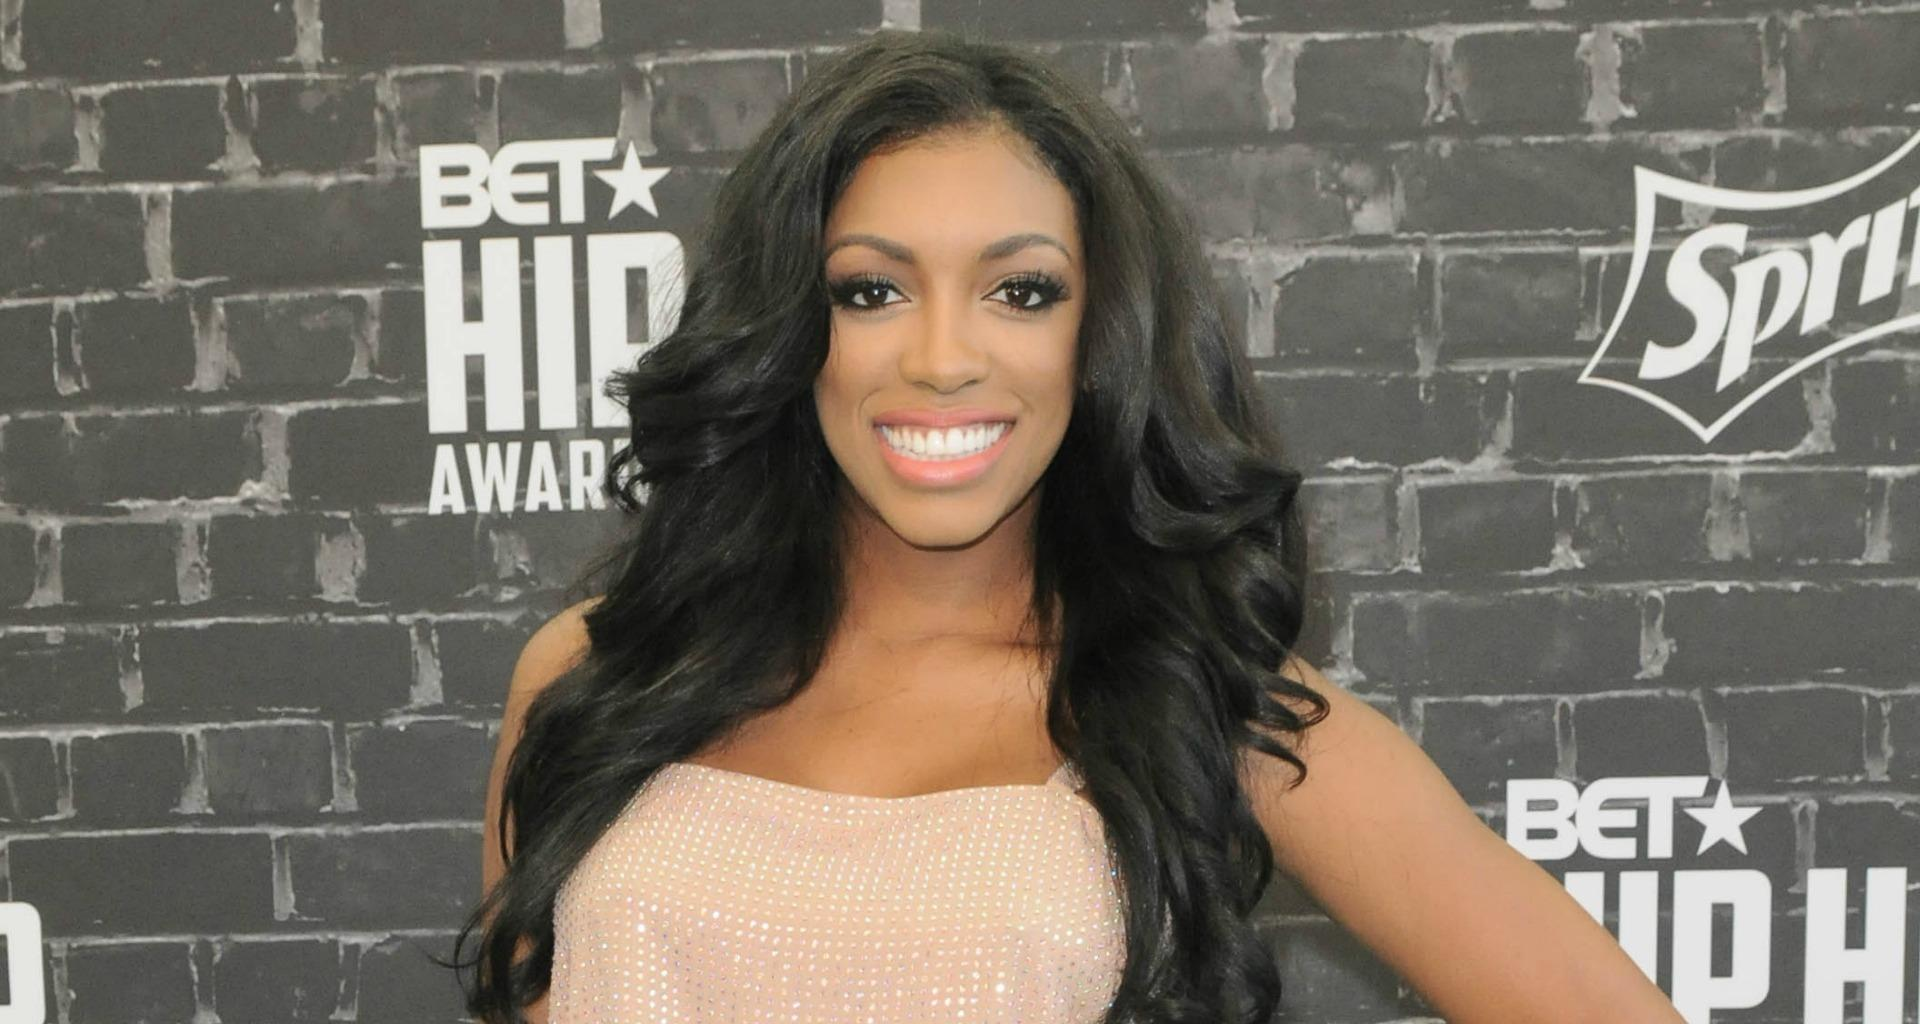 Porsha Williams Breaks The Internet With Her Latest Message & Photo Session With Baby PJ - She's Showing Off A Lot Of Skin And Fans Are In Awe